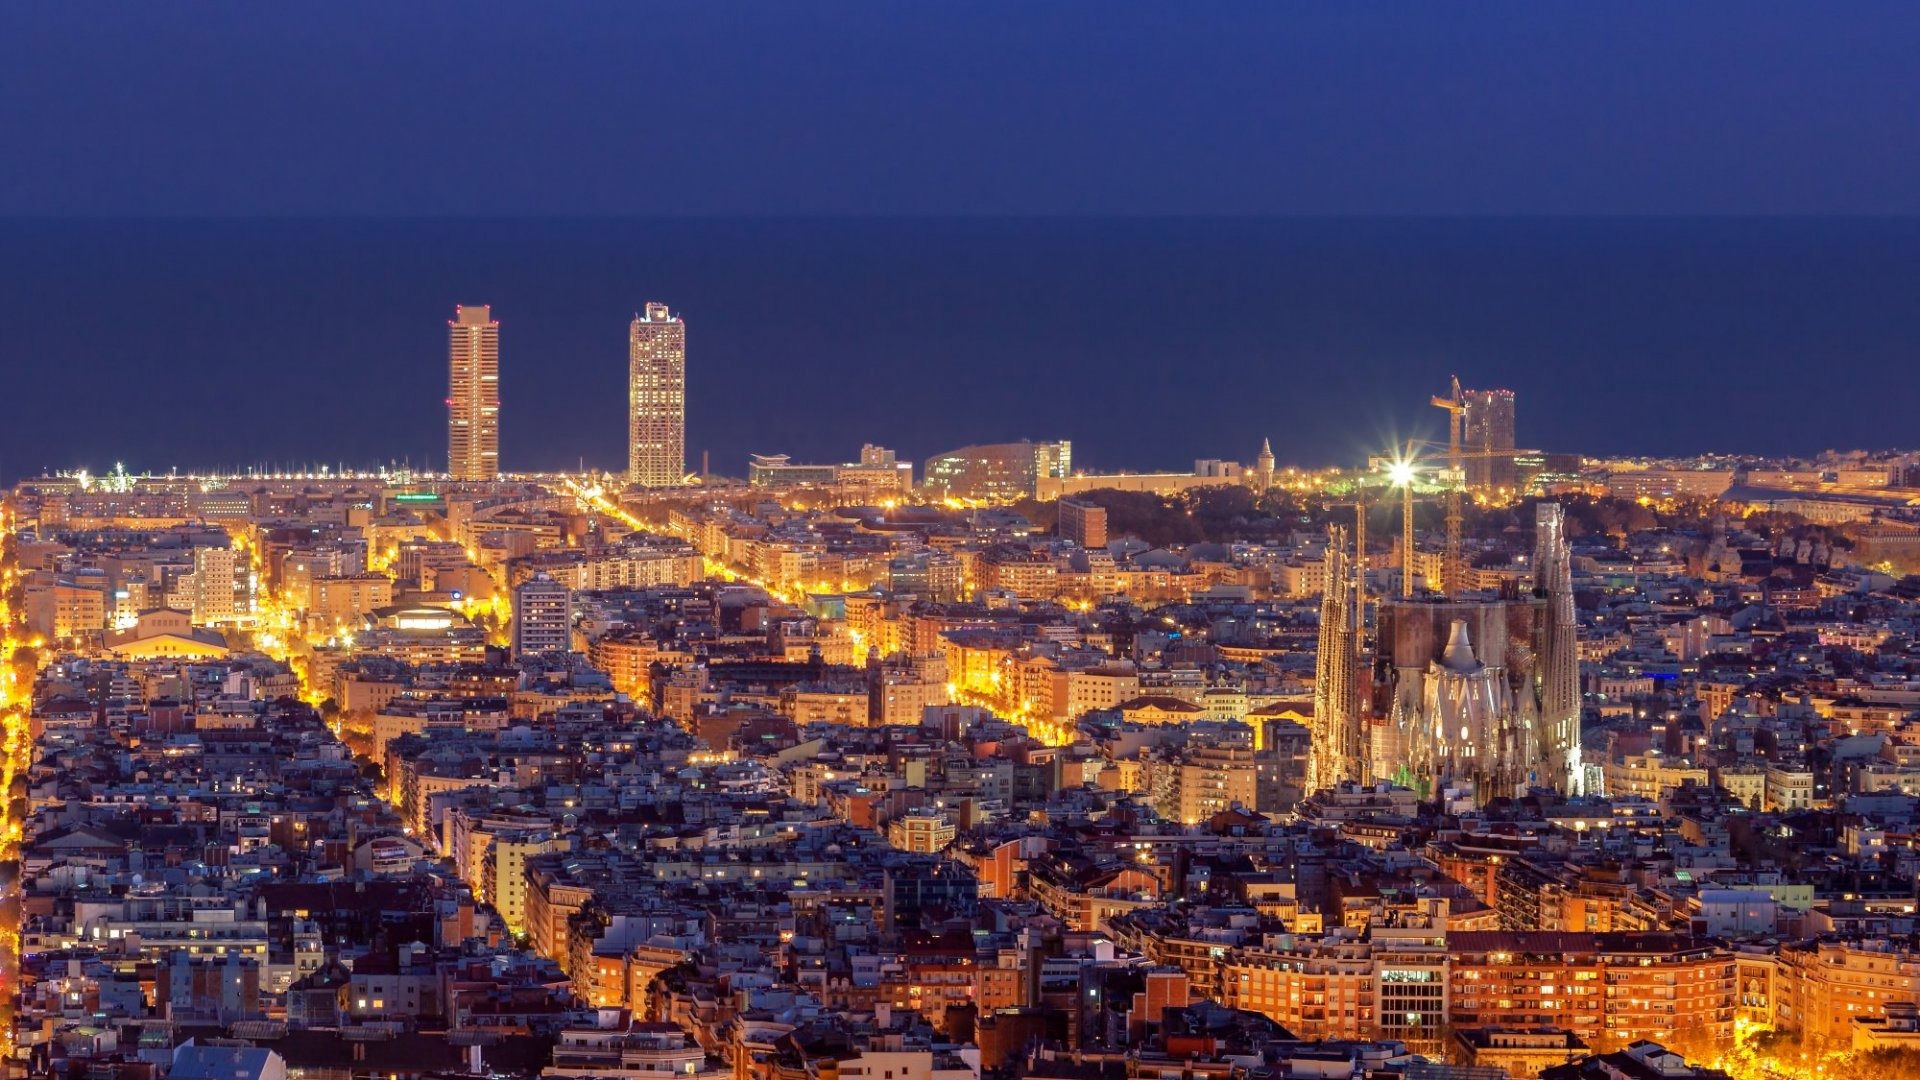 4 Ways Uncertainty Impacts Business - Catalonia as a Case Study